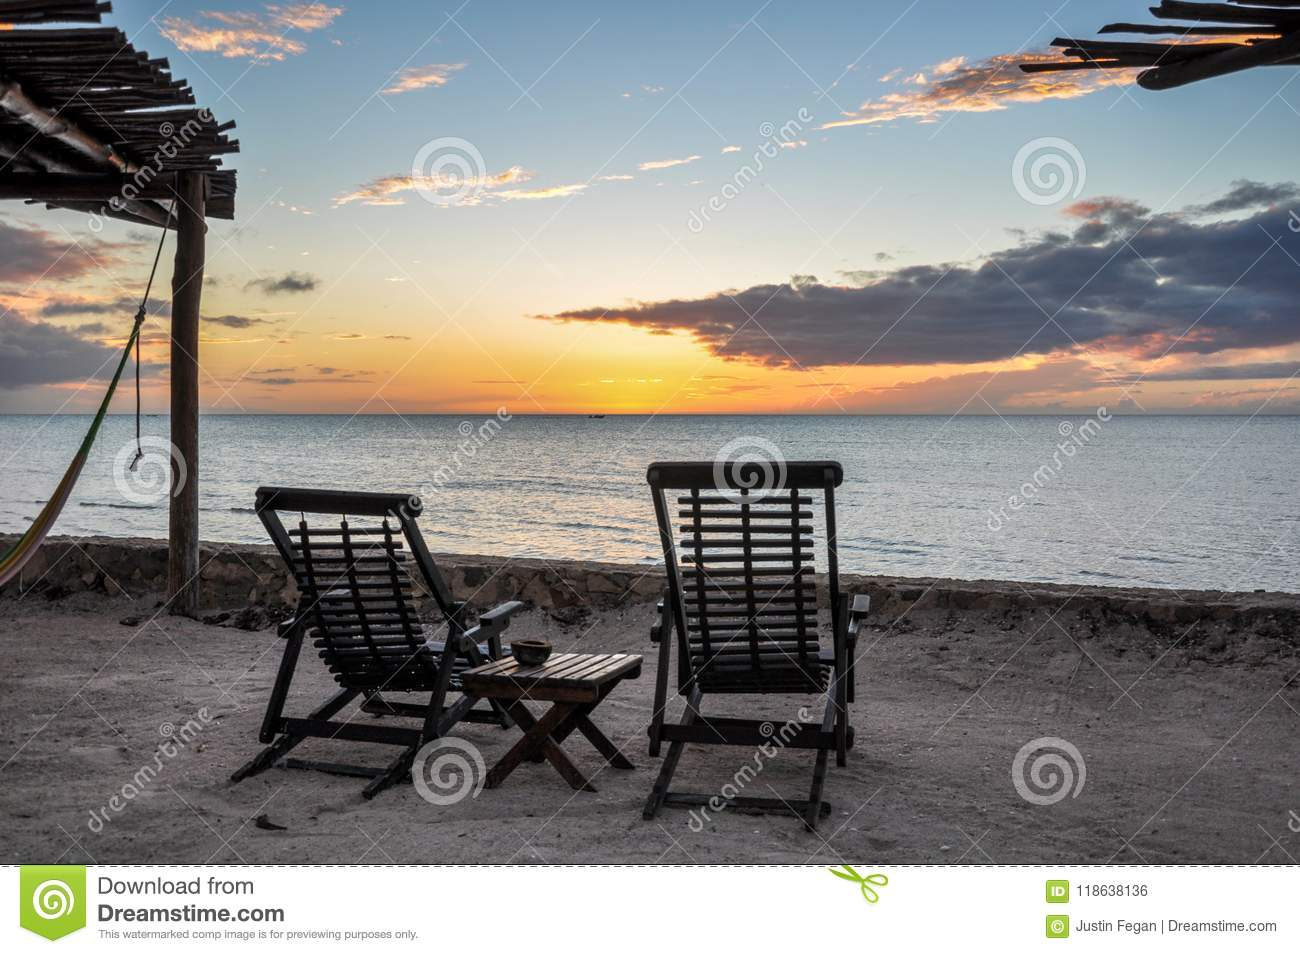 Beach Chairs overlooking sunset at Holbox Island, Mexico